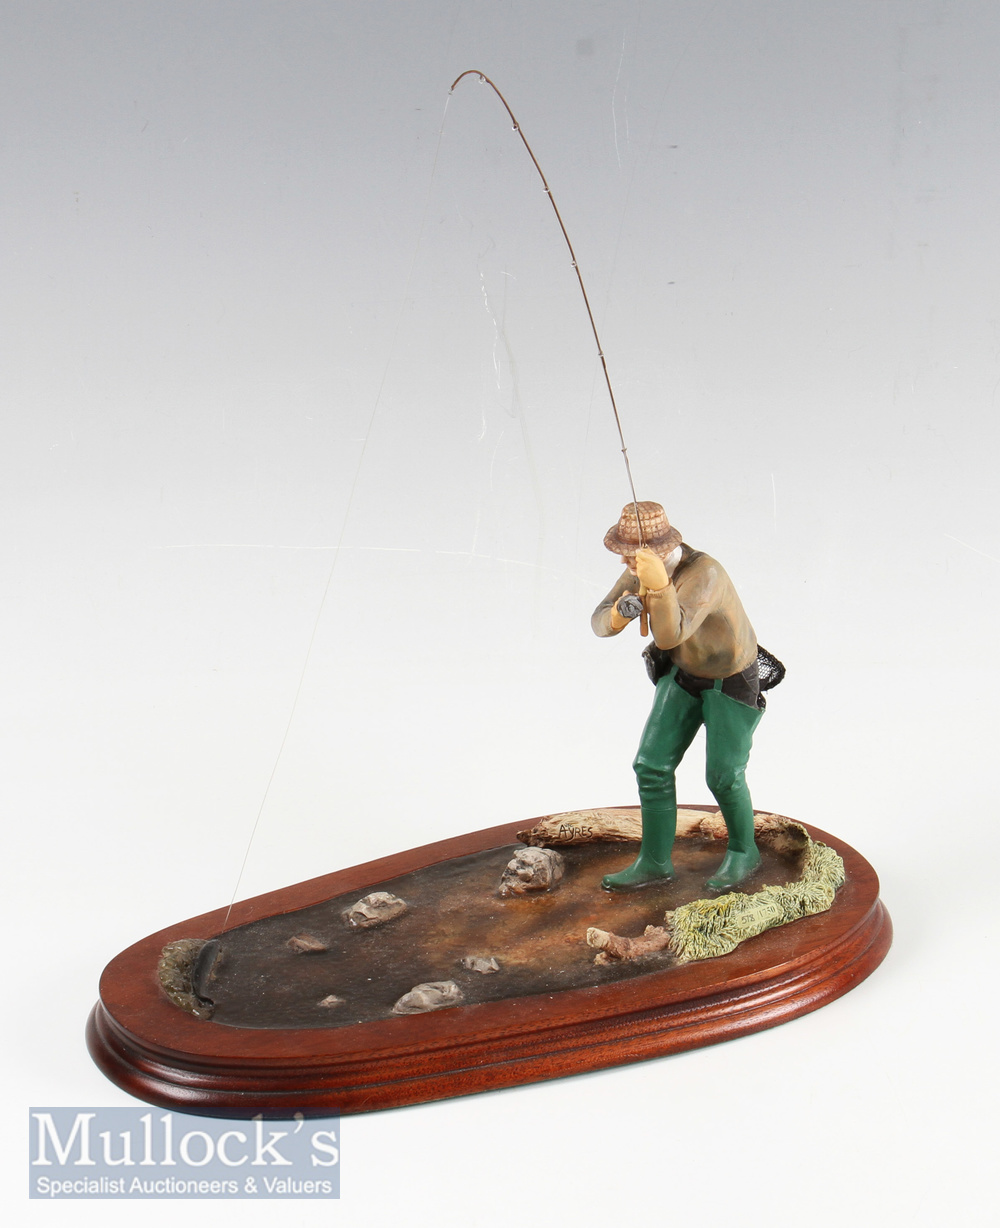 """Border Fine Arts """"Nearly There"""" Trout Fisherman model No B0254 by Ray Ayres, limited edition - Image 2 of 2"""